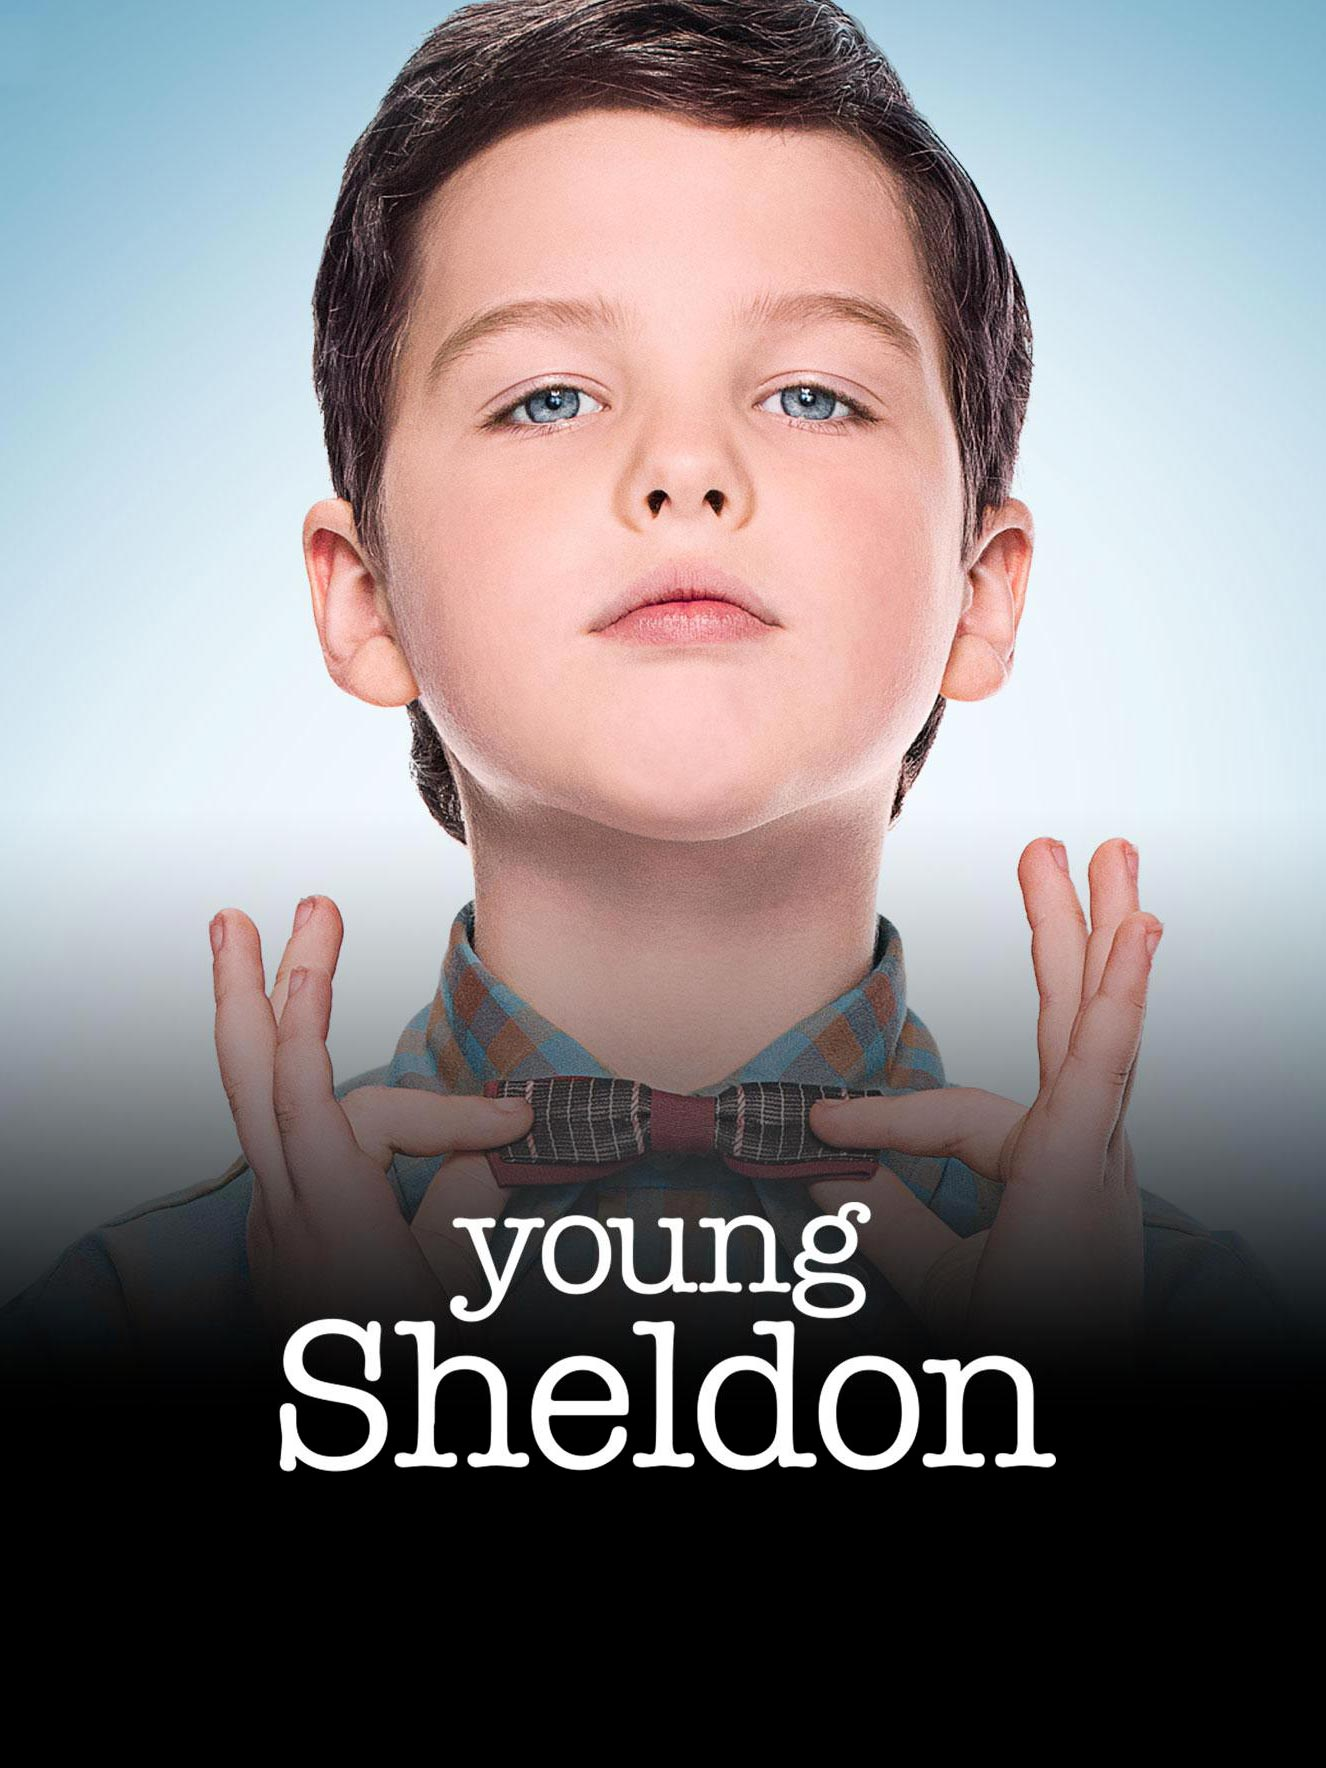 Assistir Young Sheldon Online 2ª Temporada